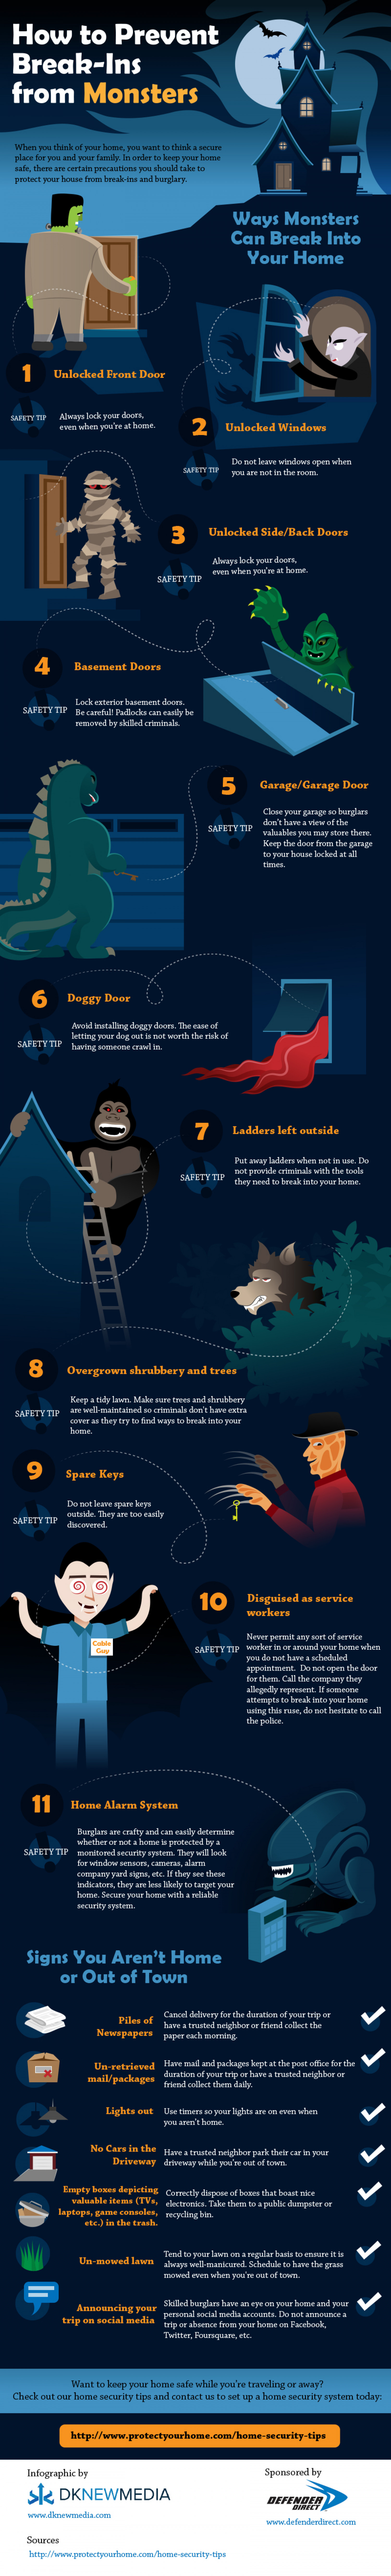 How to Prevent Break-Ins from Monsters Infographic